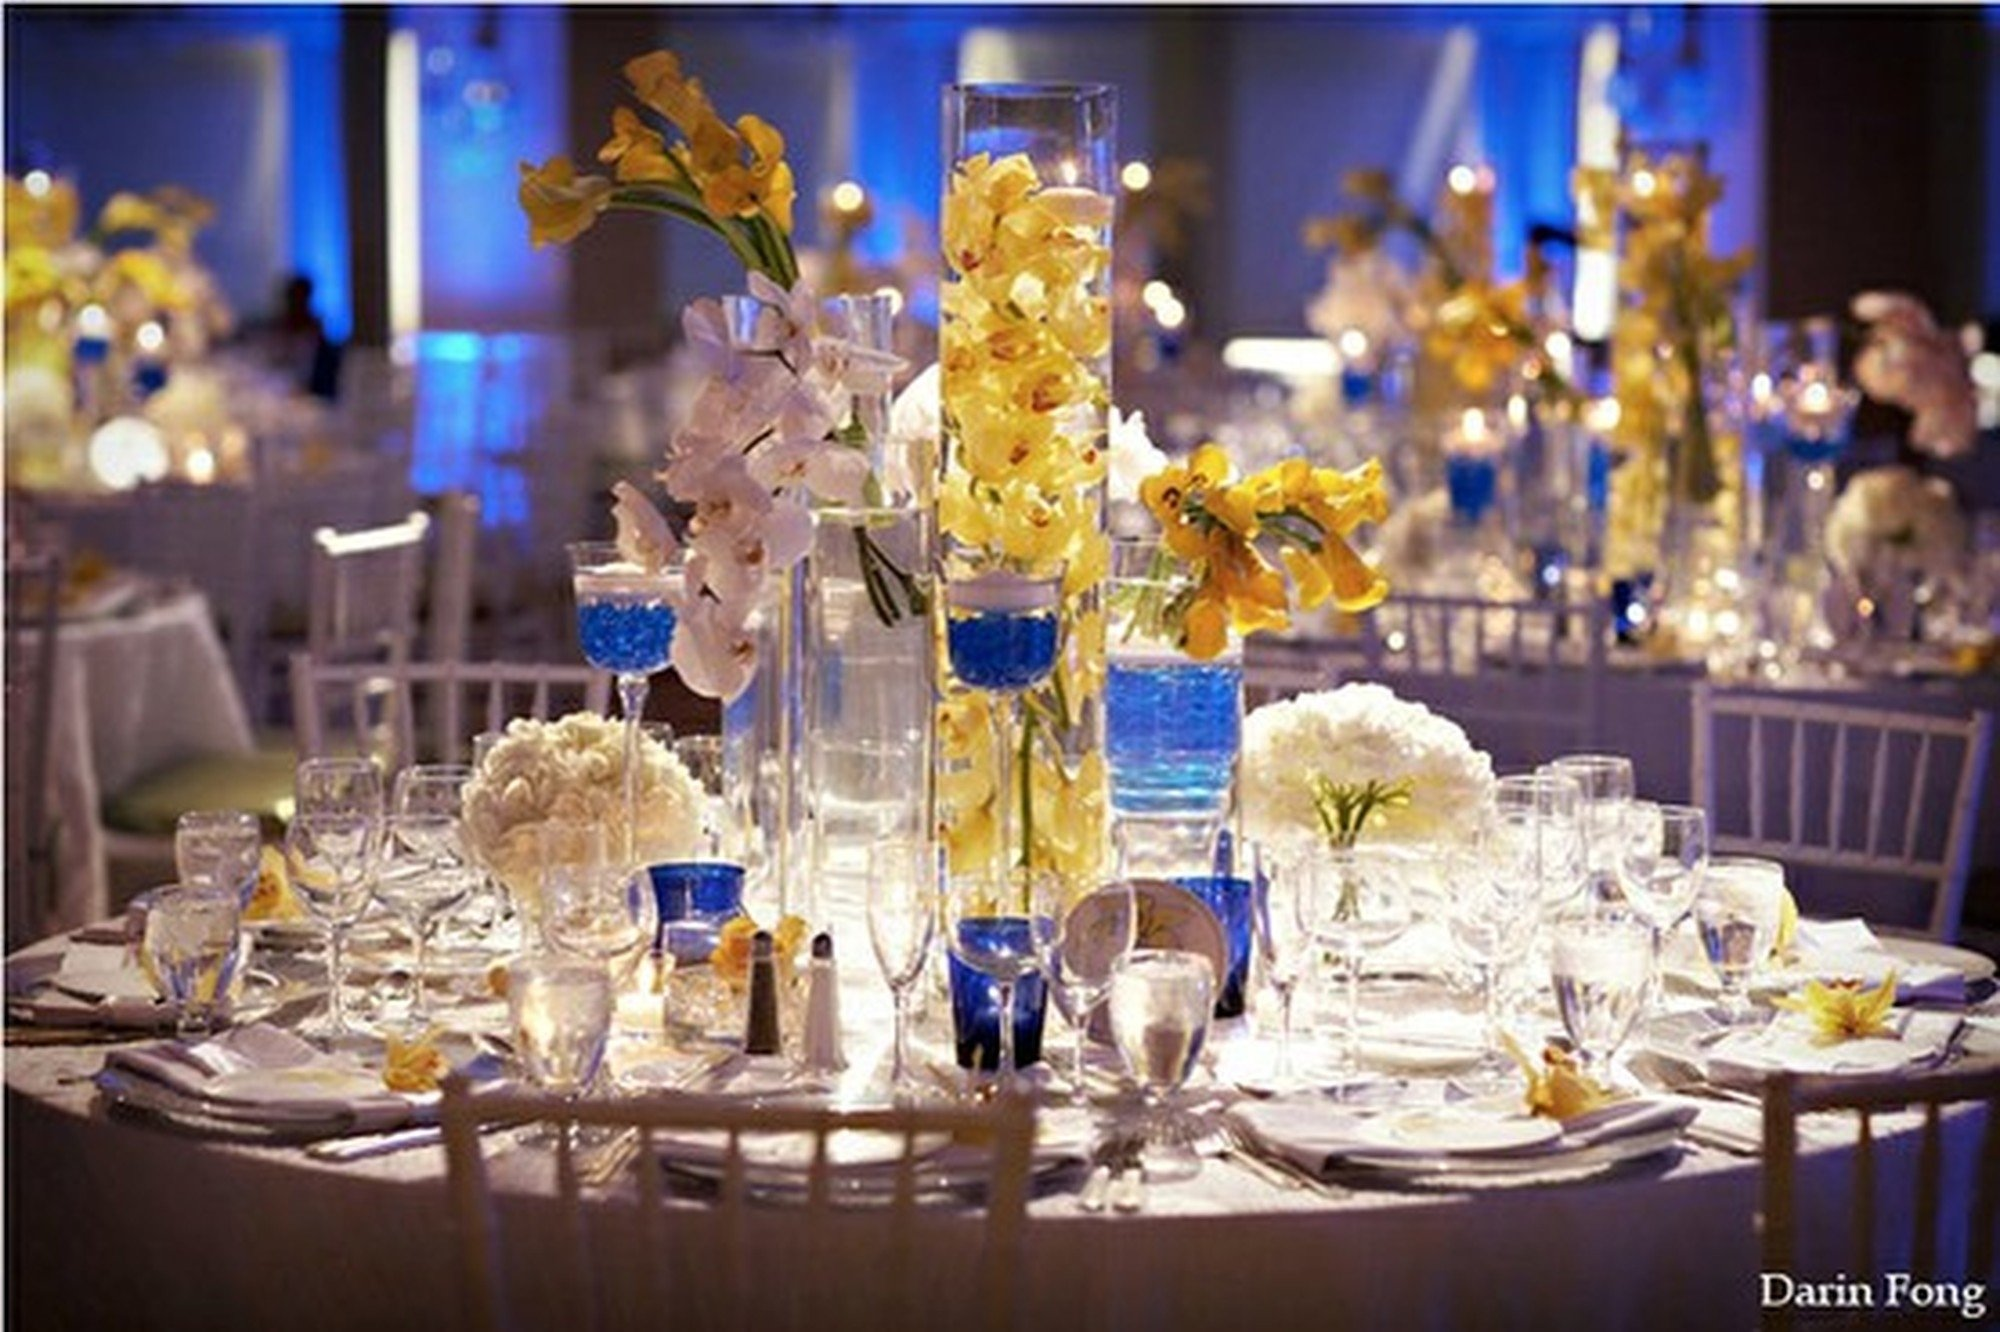 10 Gorgeous Beauty And The Beast Wedding Theme Ideas beauty and the beast wedding theme ideas tips venuelust 50th